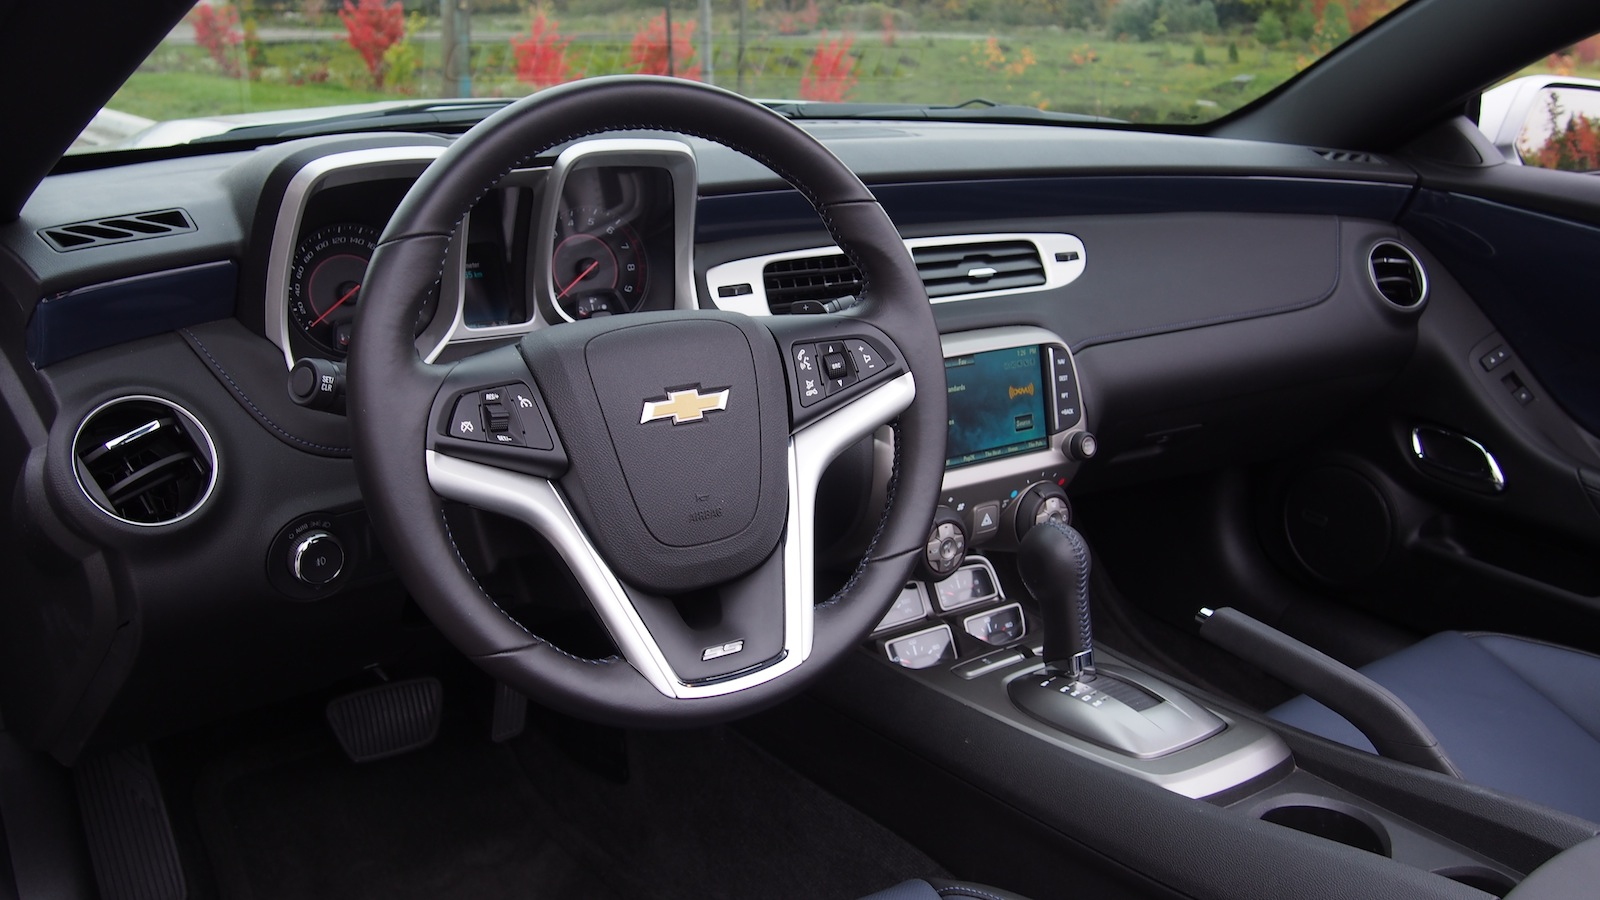 Redesign And Price 2015 Chevrolet Impala Ss Price And Release Date 2017 2018 Best Cars Reviews